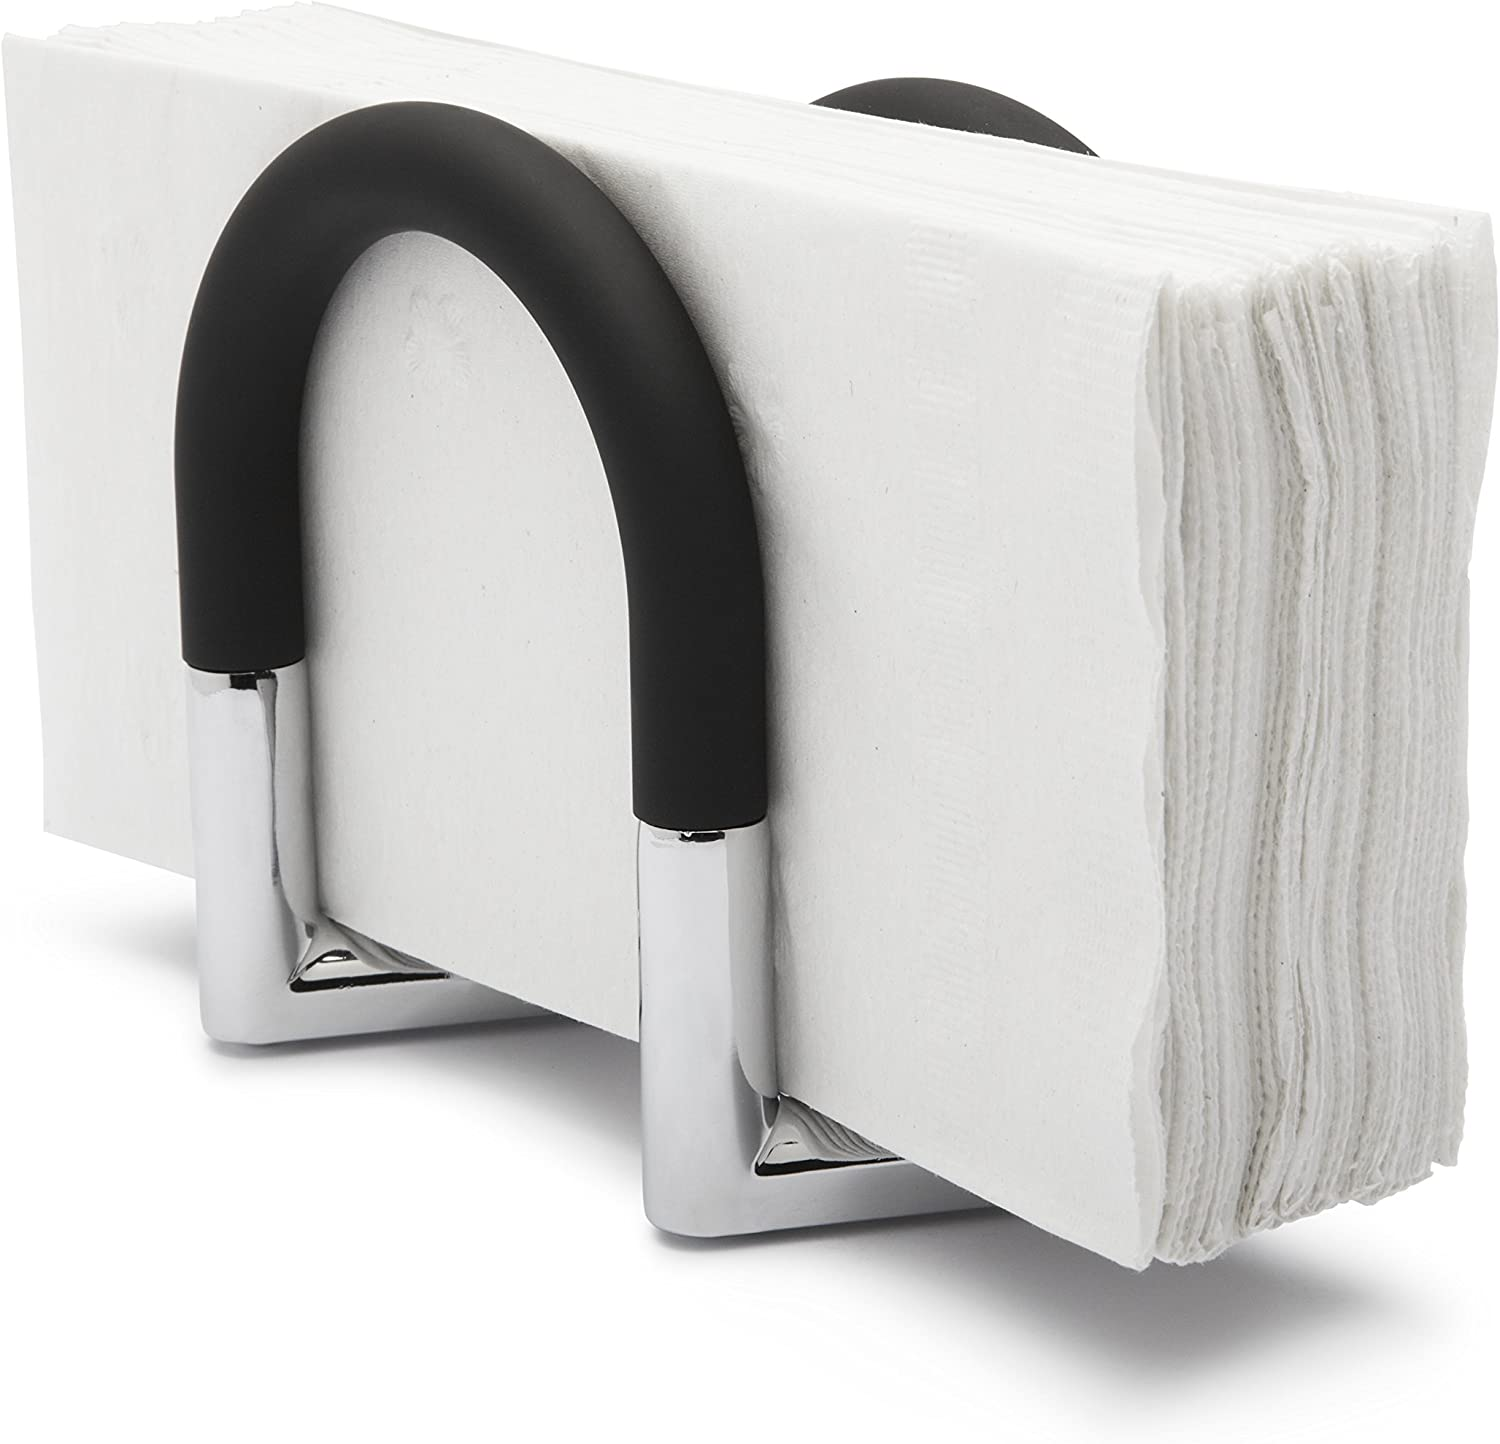 Umbra Swivel Adjustable Napkin Holder